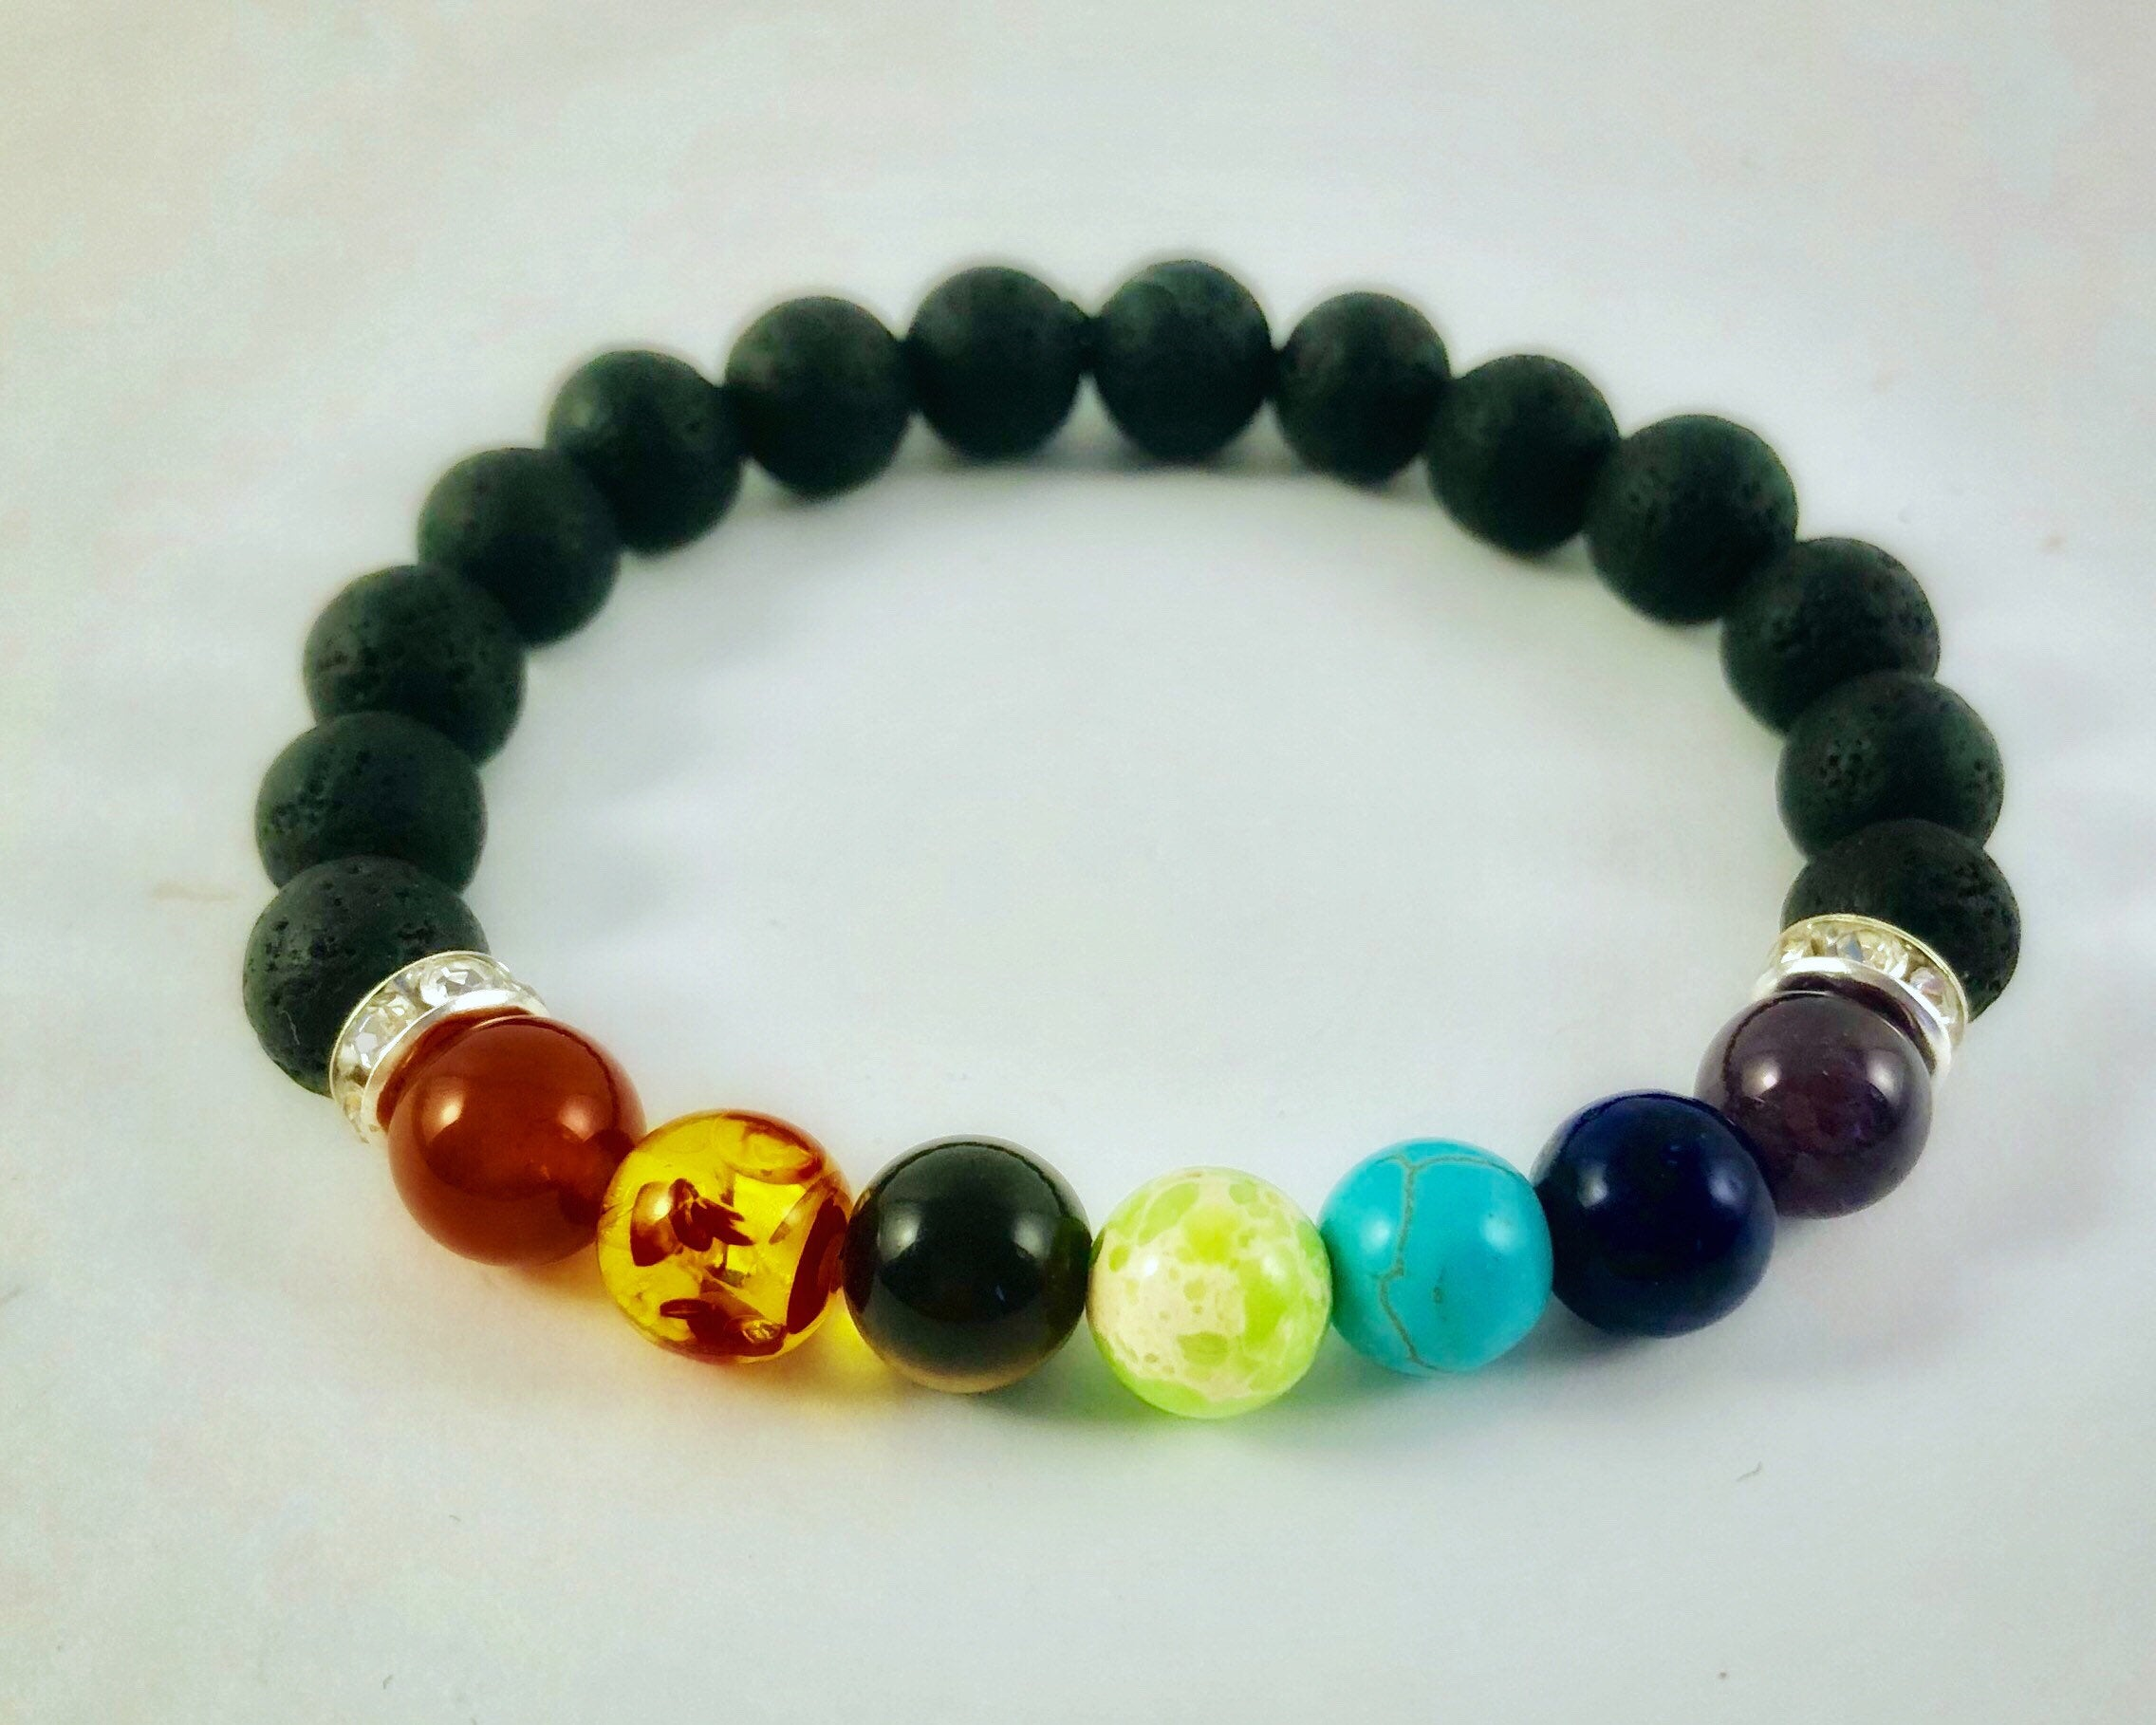 Chakra Healing Bracelet Set with Black and White Lava Stones and Genuine Crystals